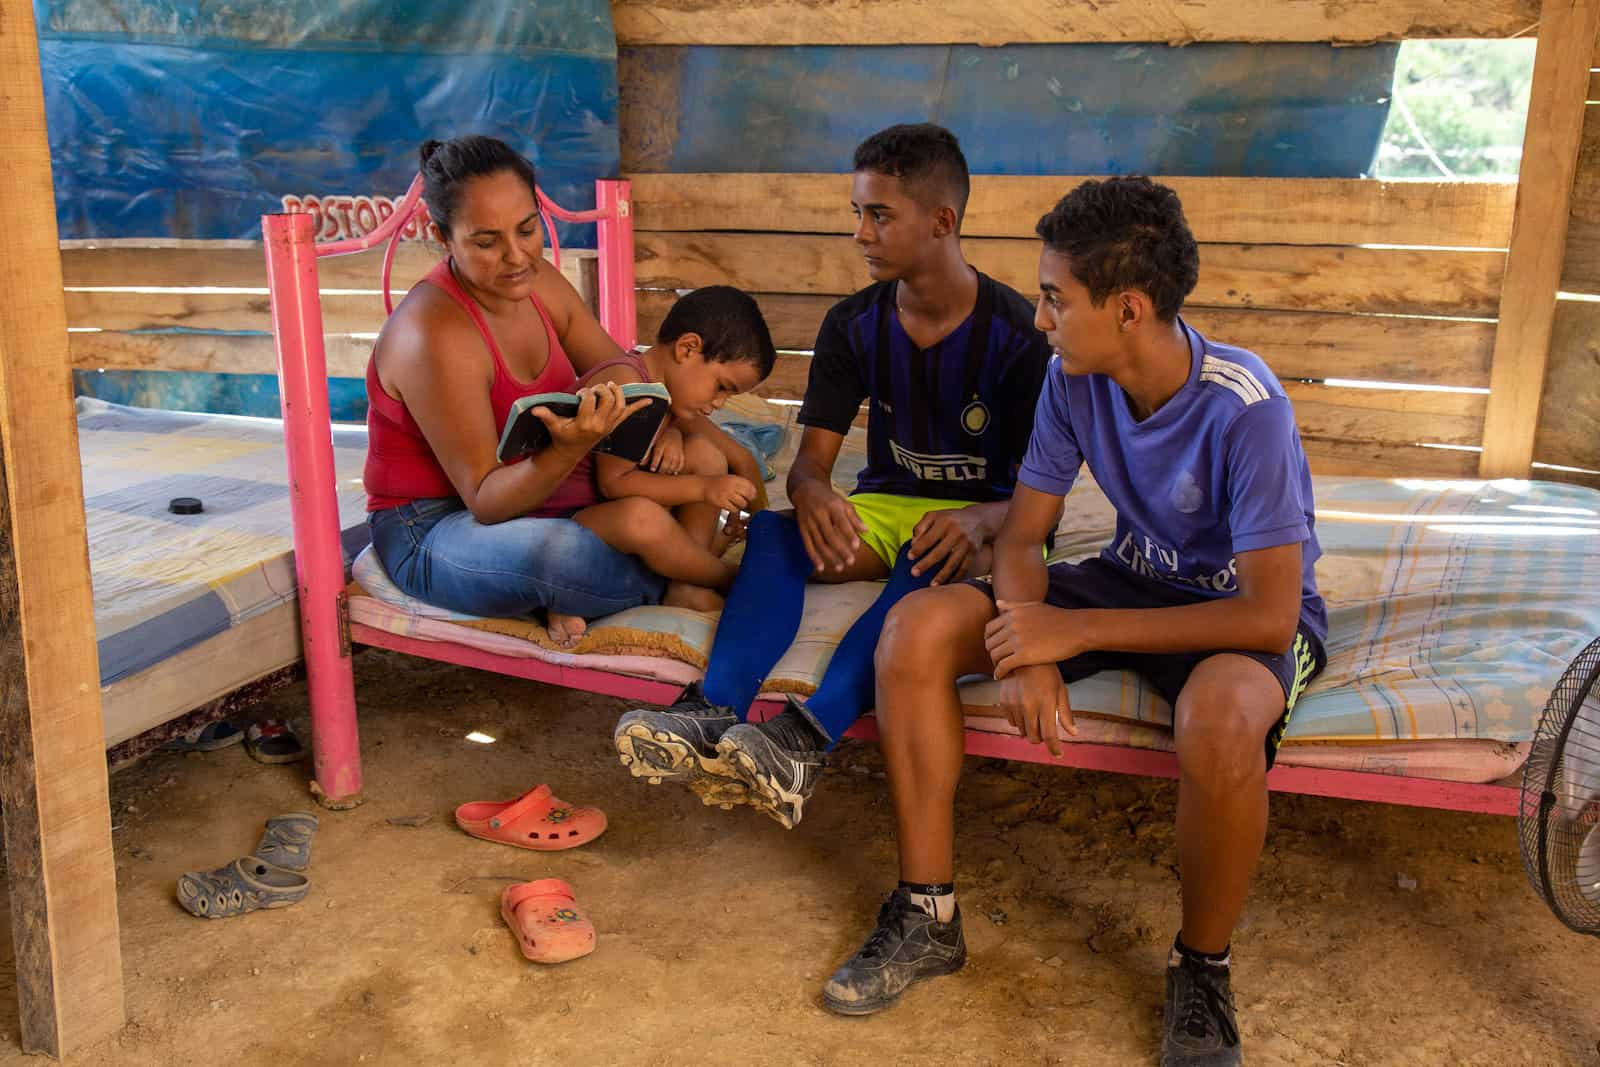 A woman and three boys sit on a bed reading the Bible, in a house with wooden slat walls and dirt floors.